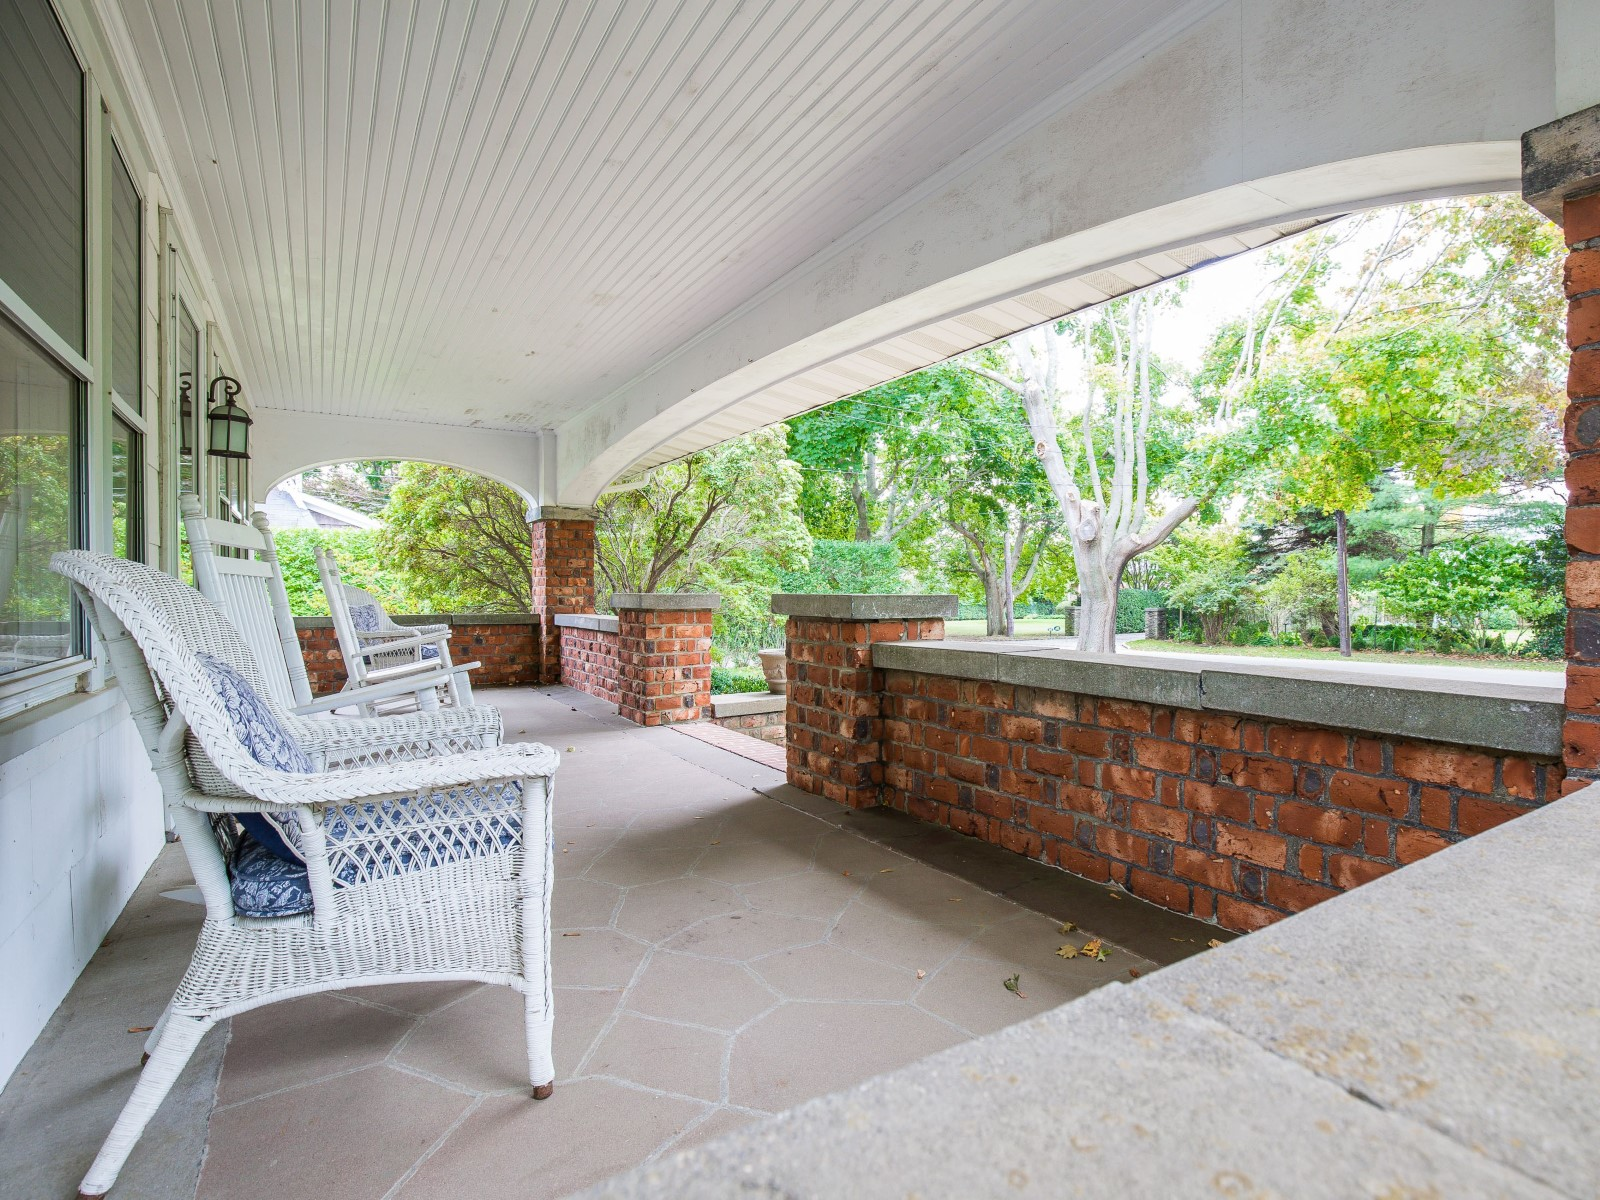 Additional photo for property listing at Amagansett Lanes 93 Meeting House Lane Amagansett, New York 11930 United States